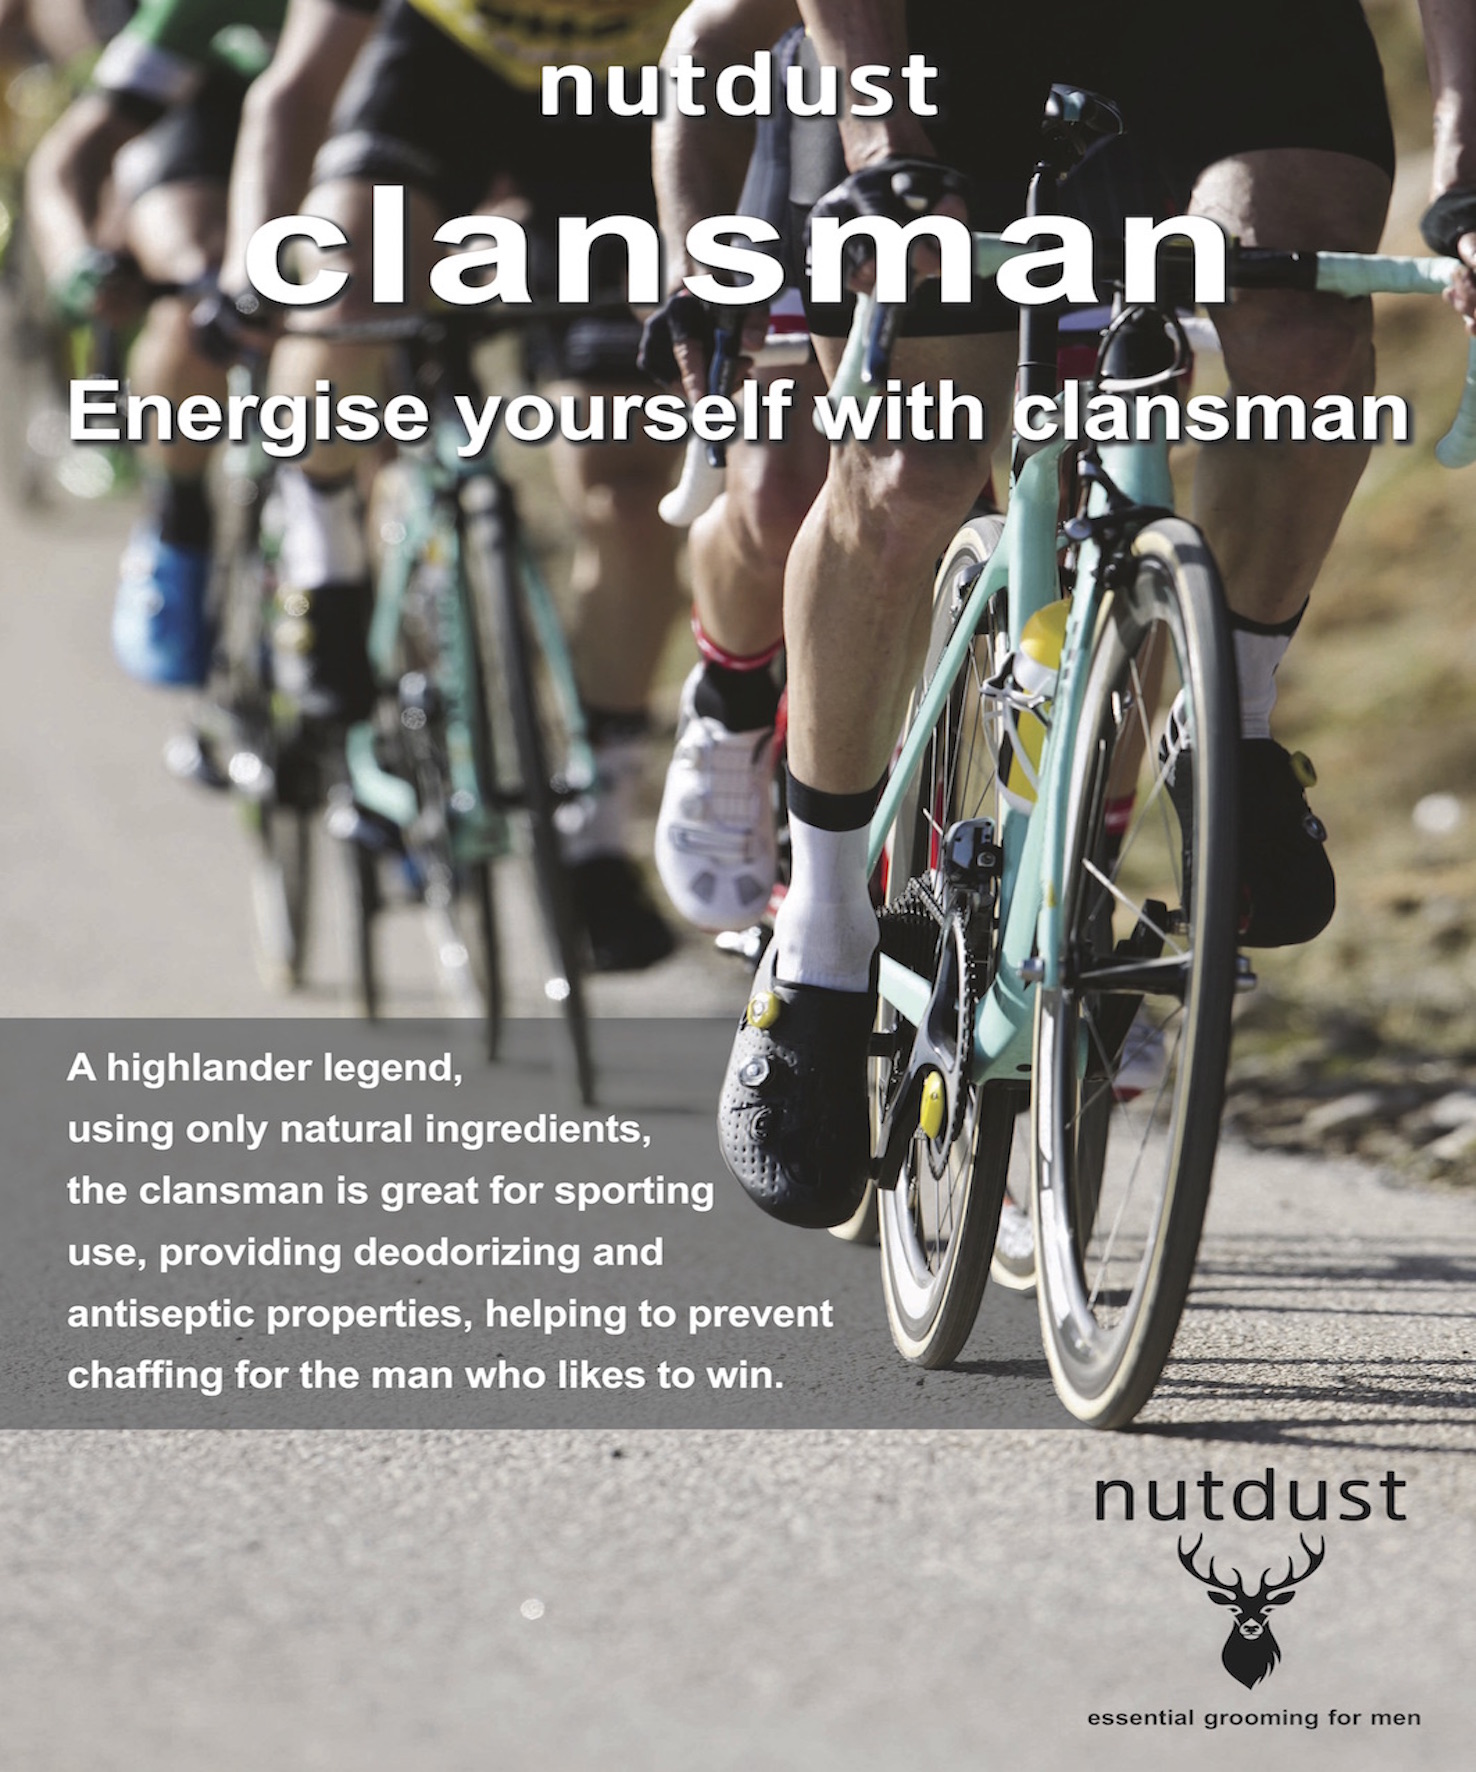 Nutdust clansman posters cycling